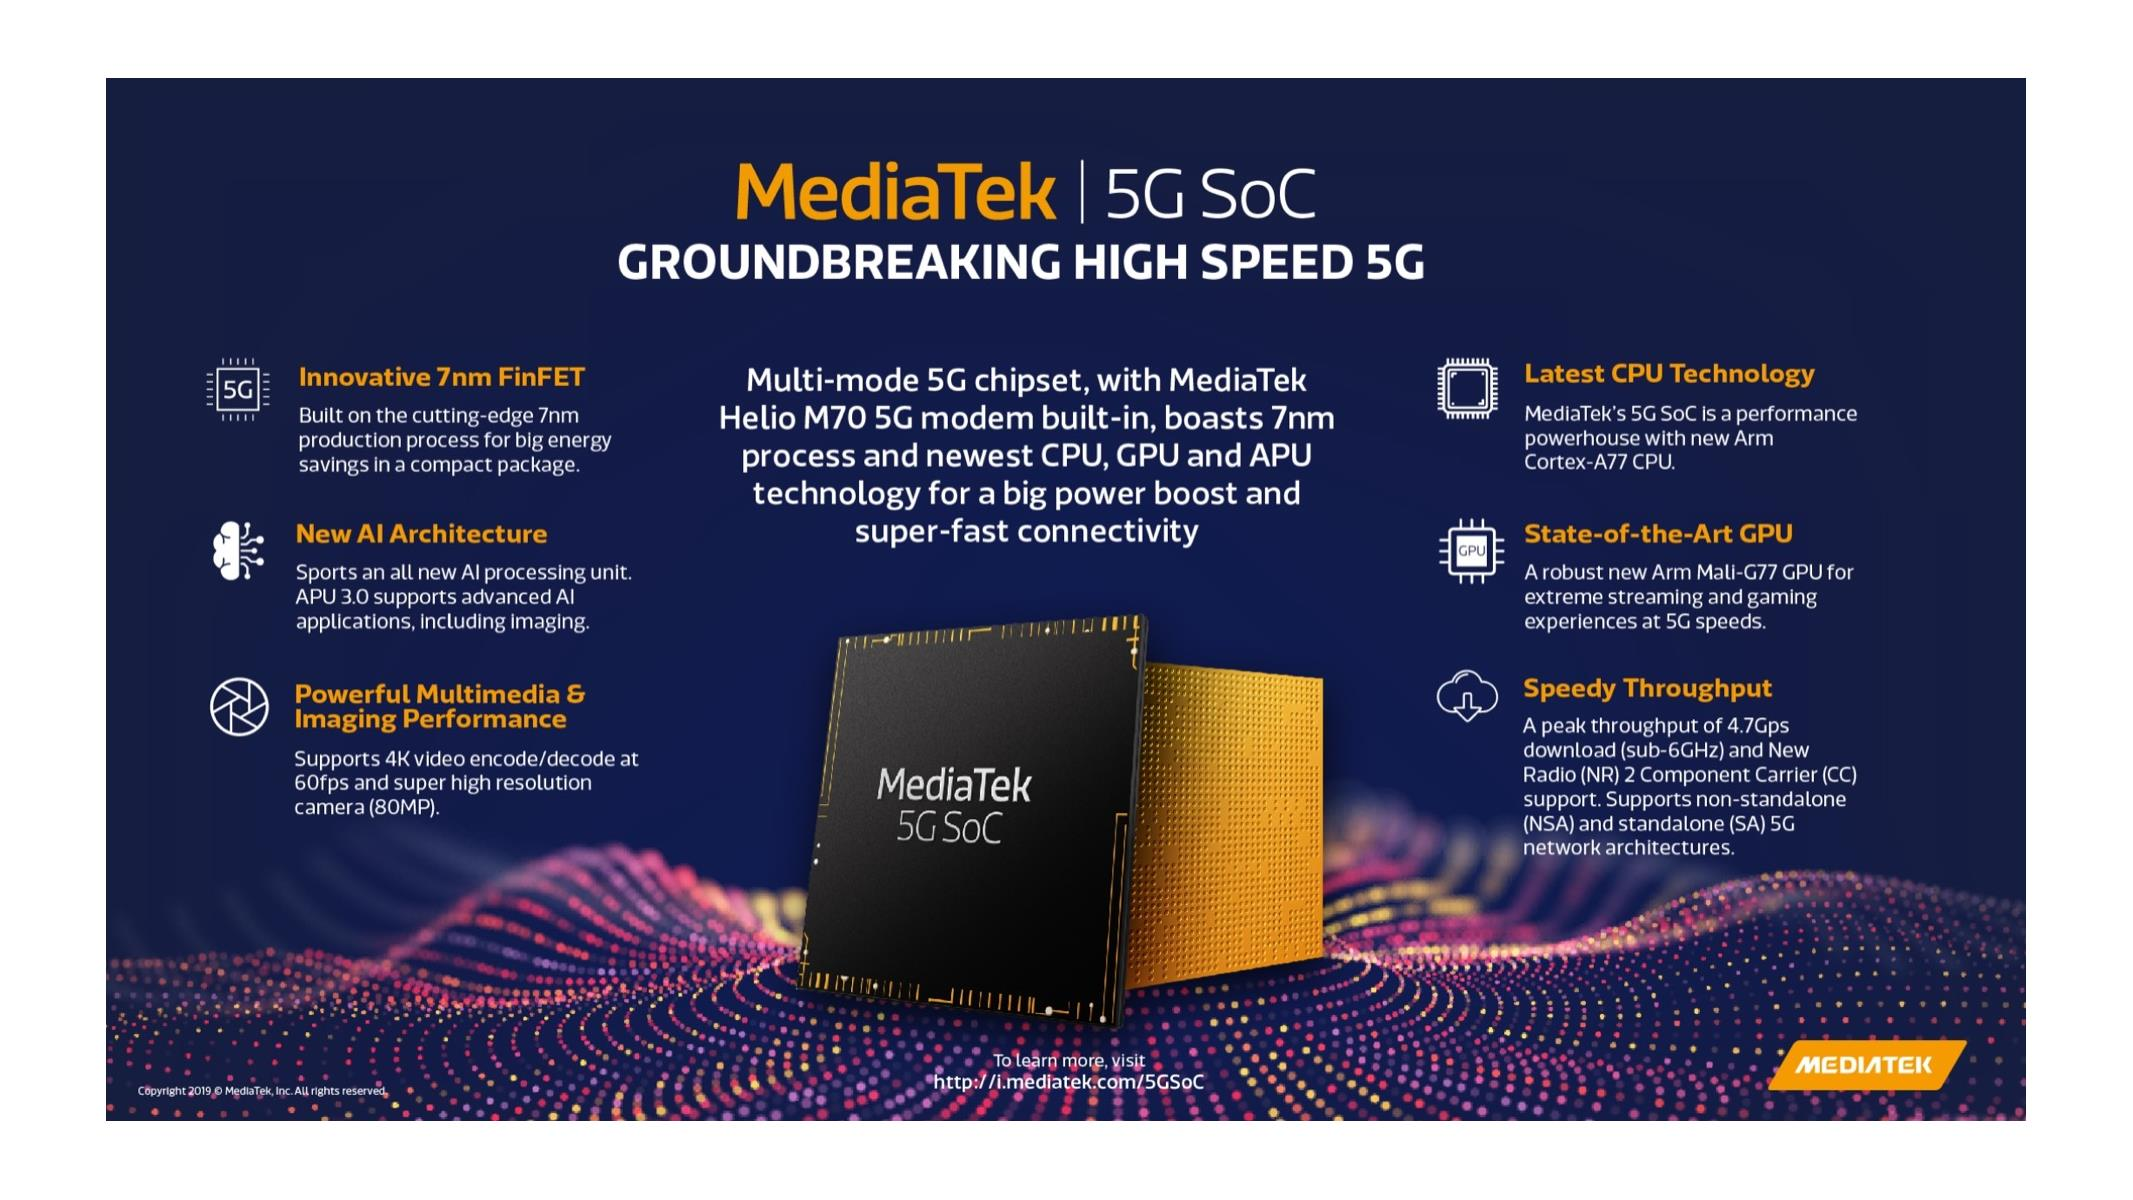 MediaTek Announces 5G SoC With Cortex-A77 For Budget Next